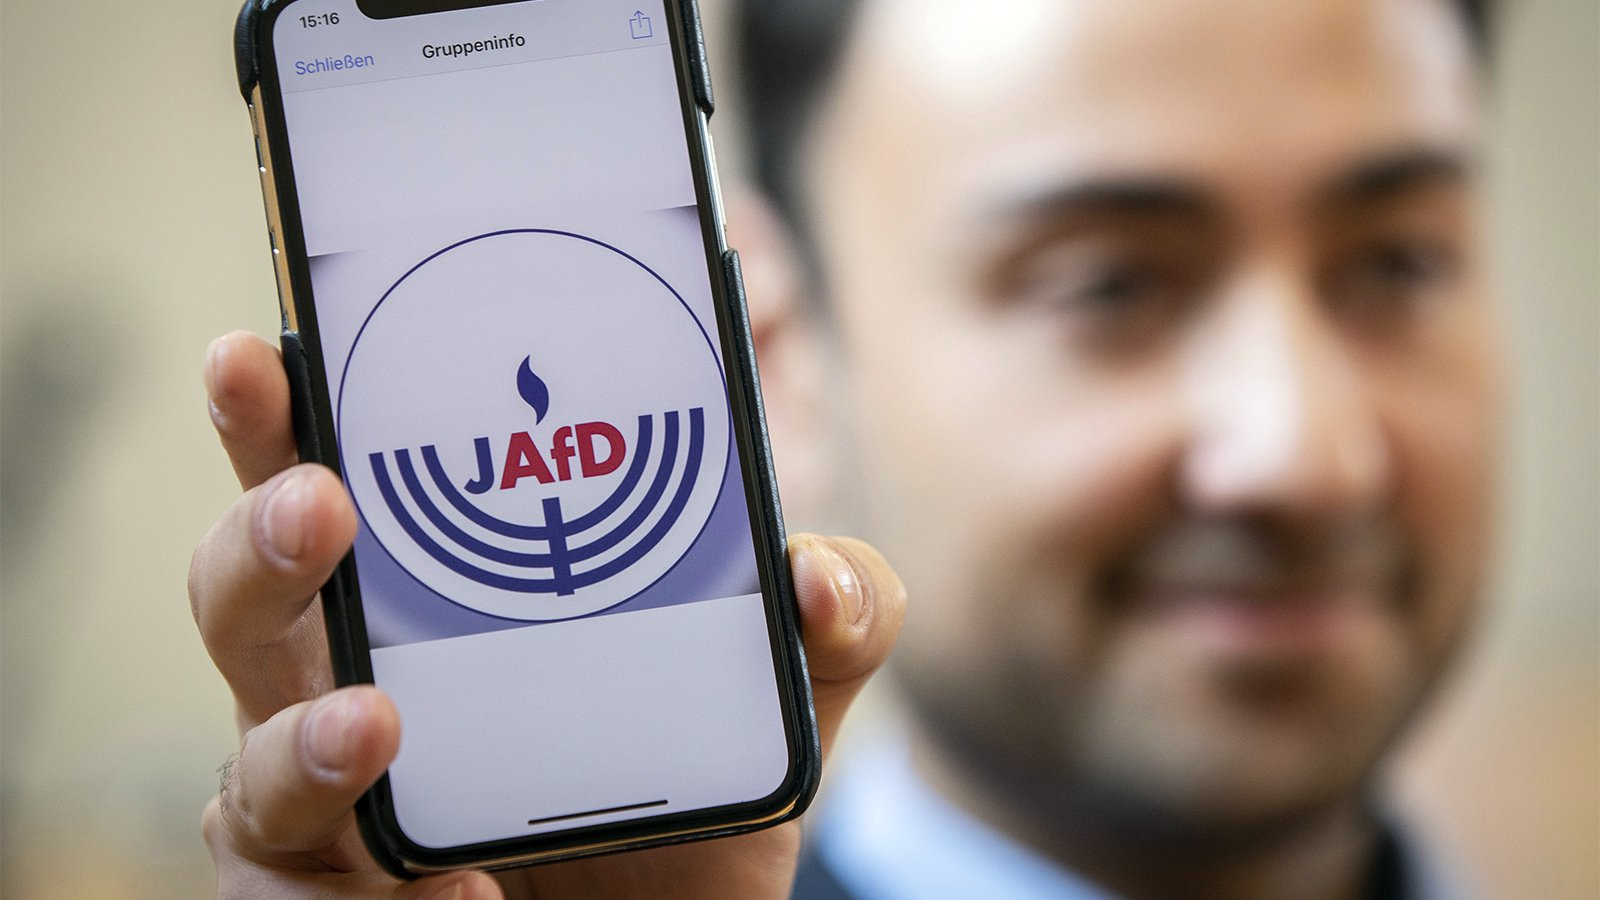 Jewish lobby in far-right German party denounced for anti-Muslim views